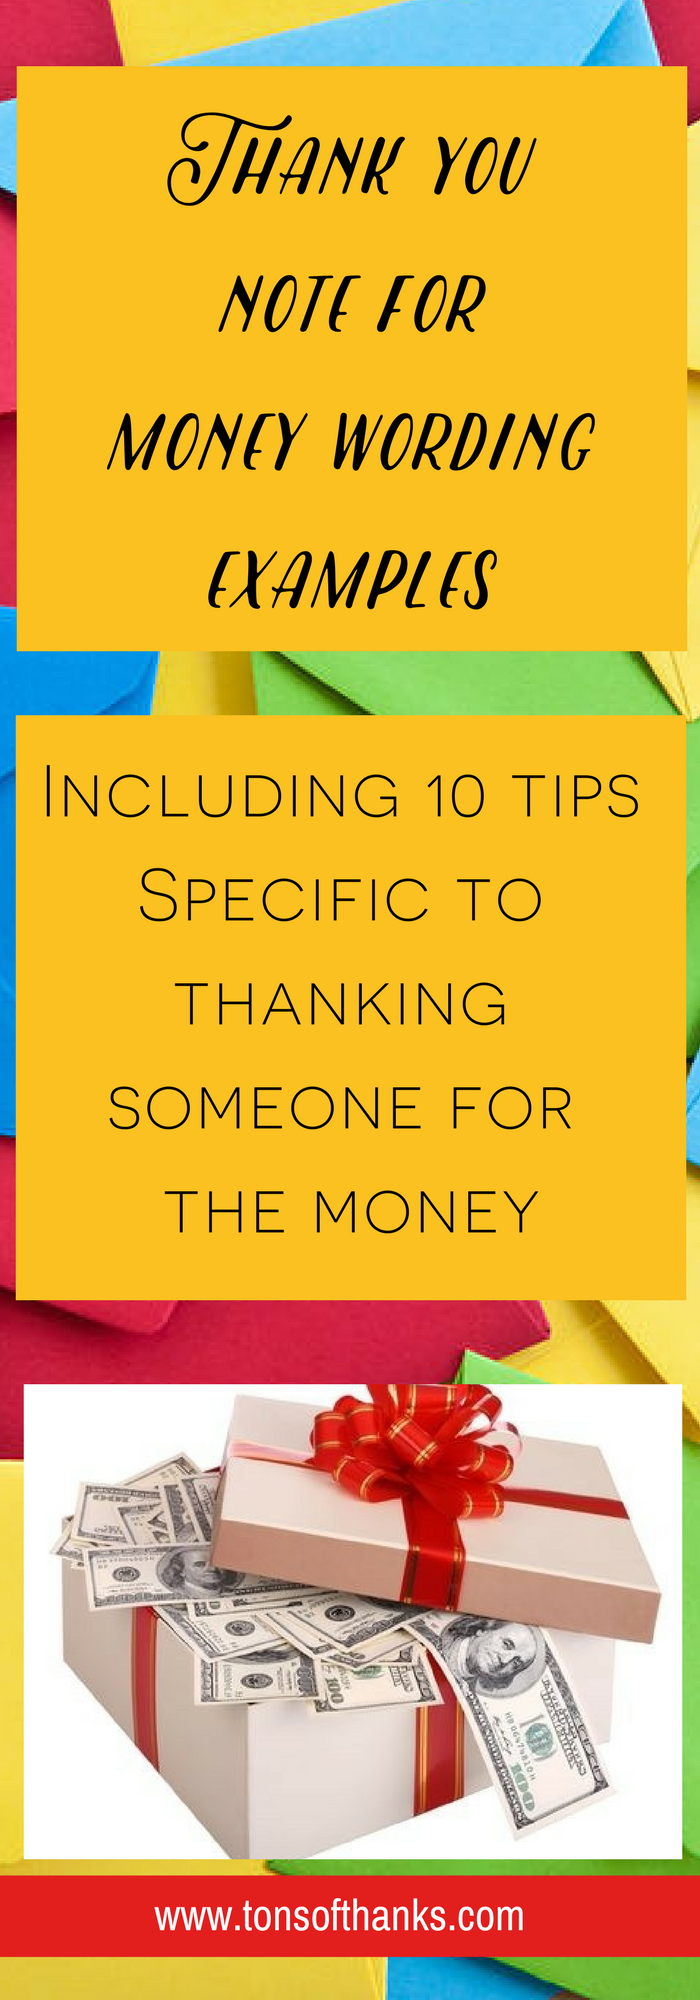 Thank You Note For Money Wording Examples This Post Includes